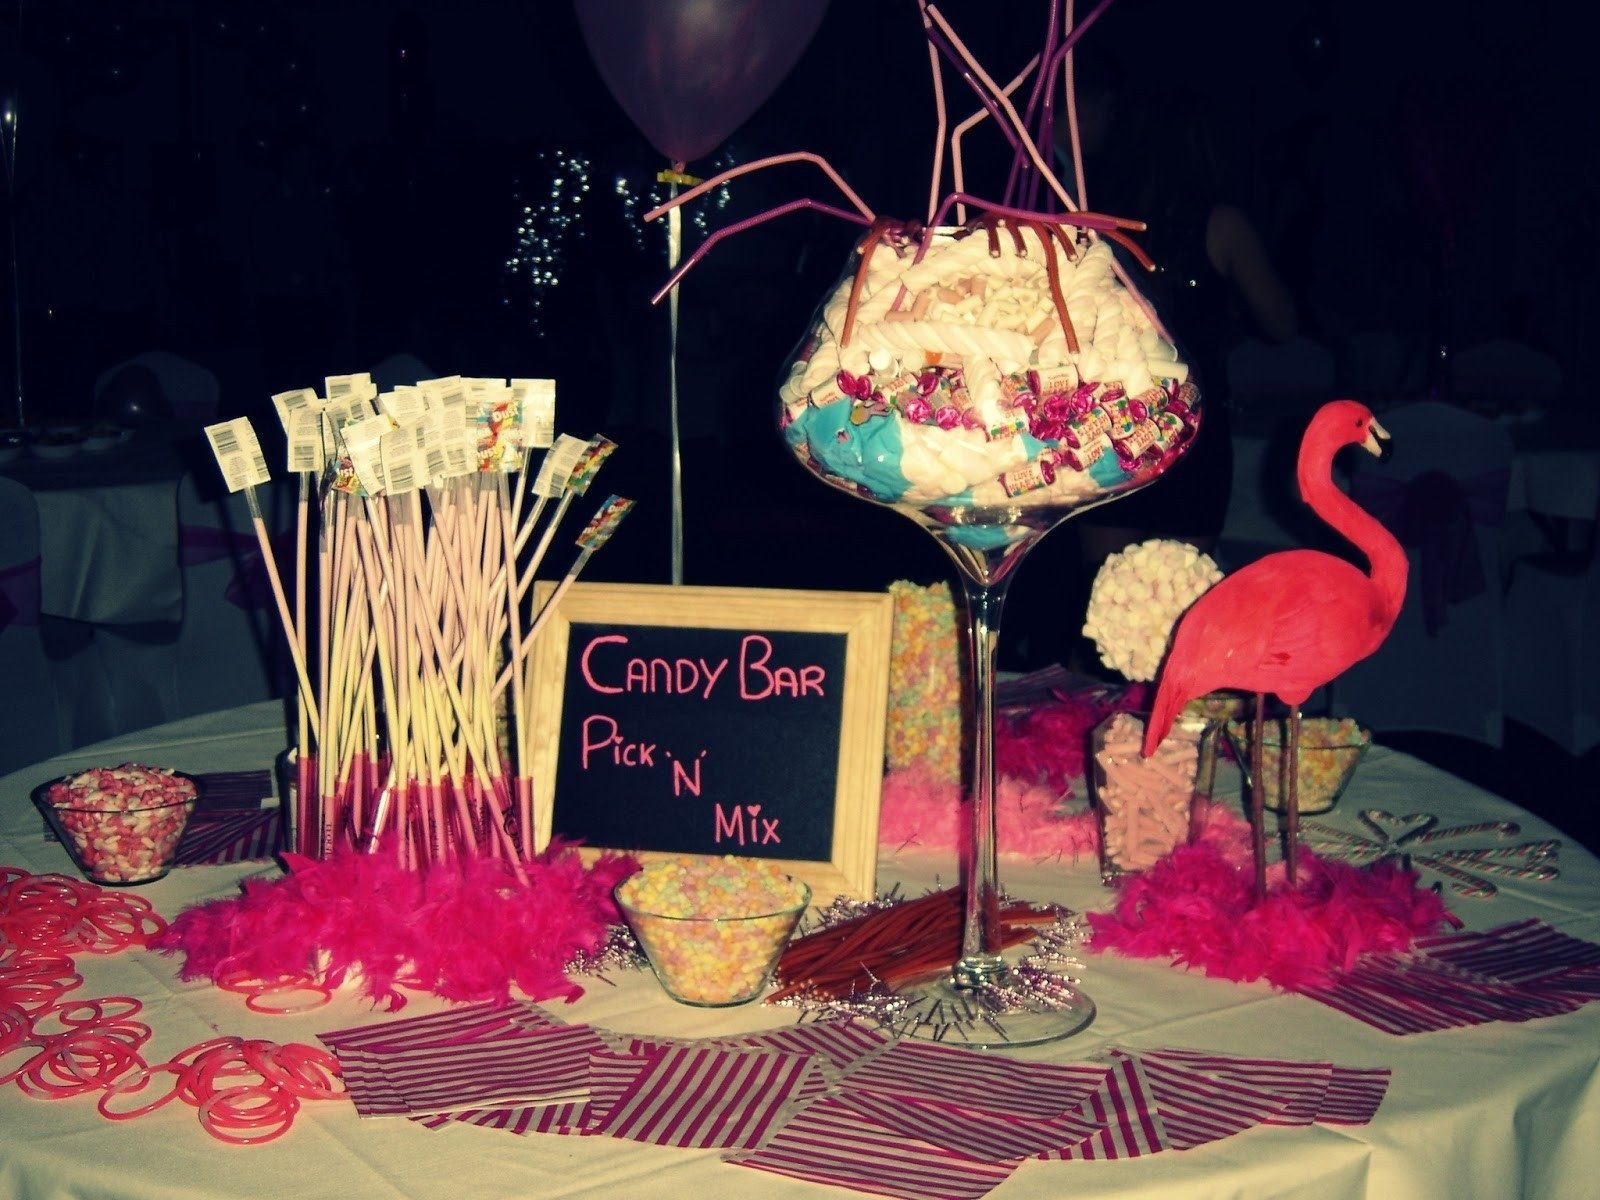 10 Wonderful Party Ideas For 18Th Birthday How To Plan A Surprise At Home